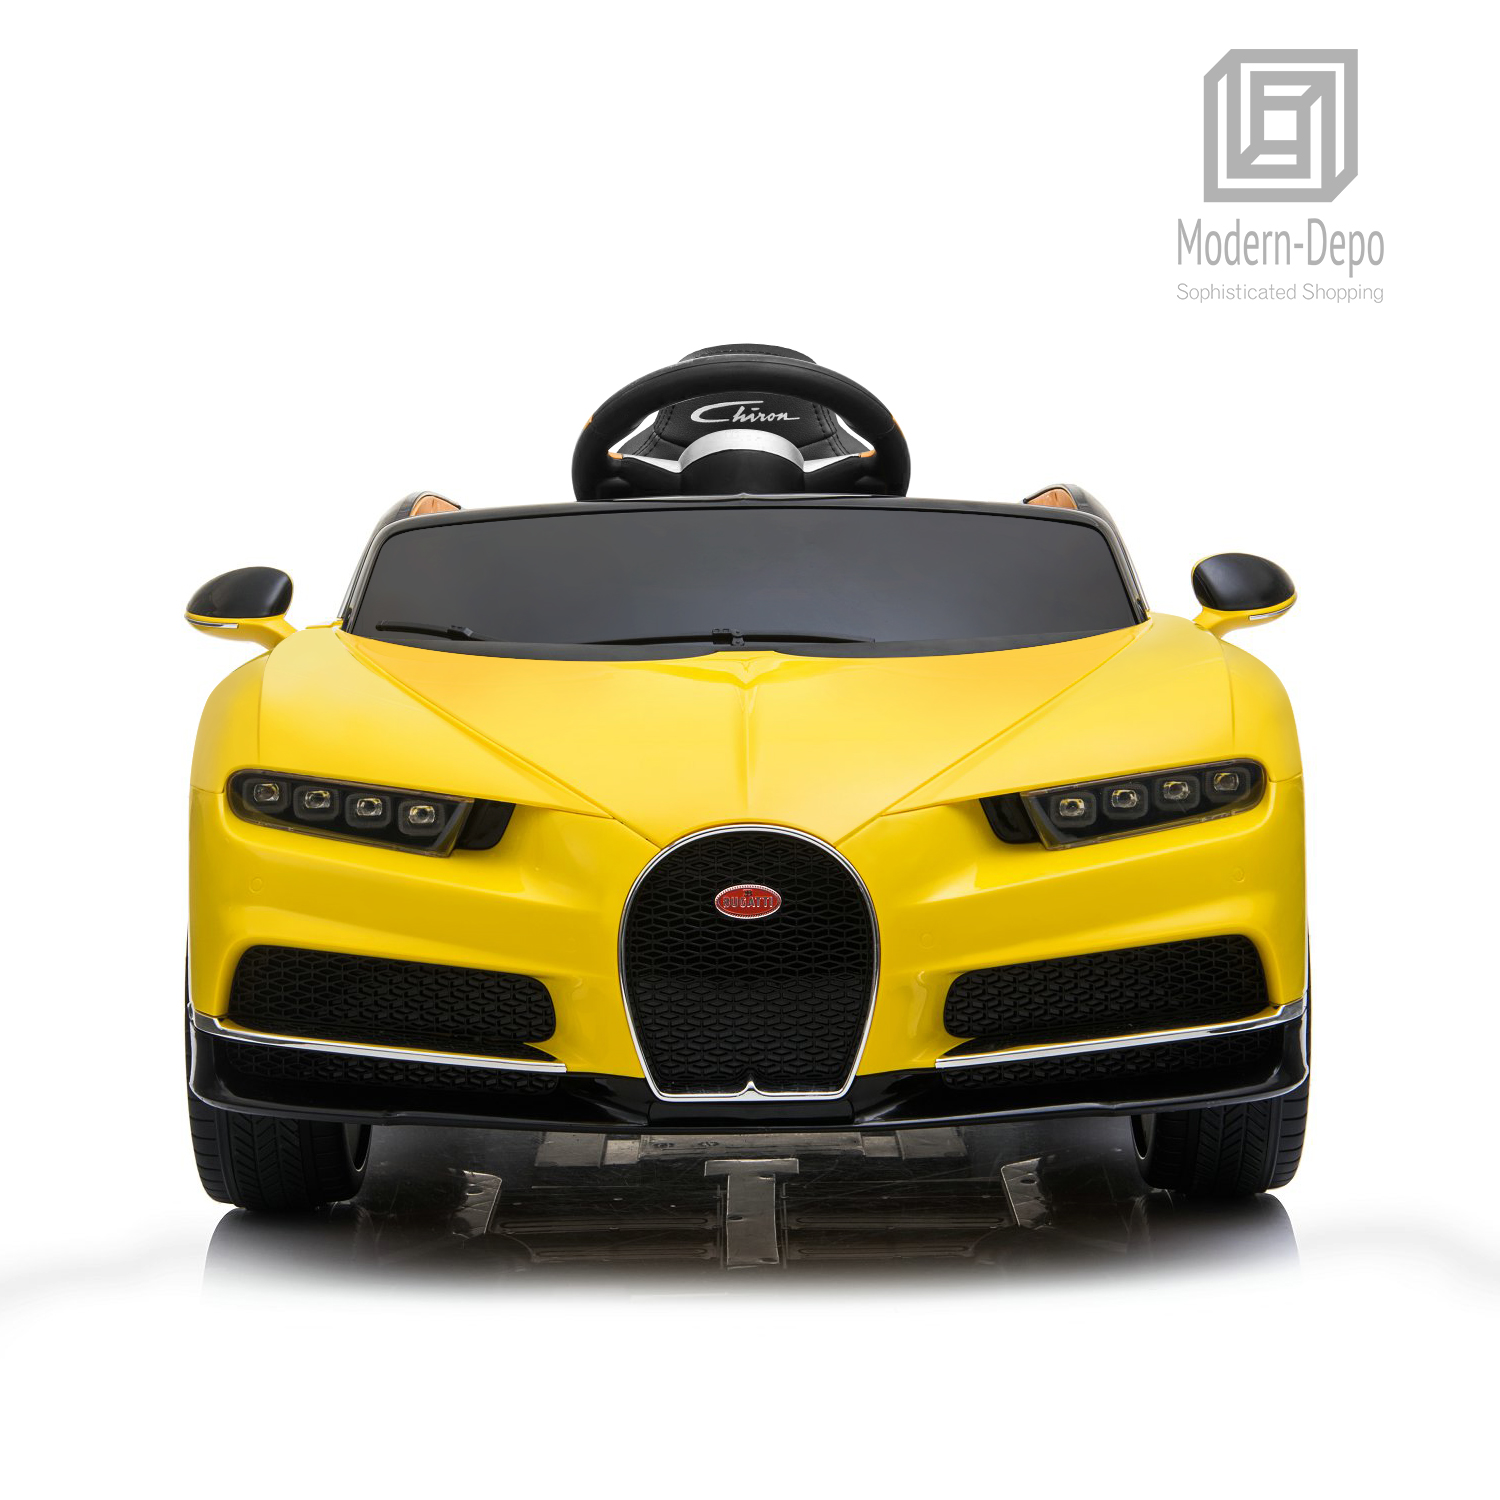 Bugatti-Chiron-12V-Kids-Ride-On-Car-with-Remote-Control-High-Speed-Motor miniature 44